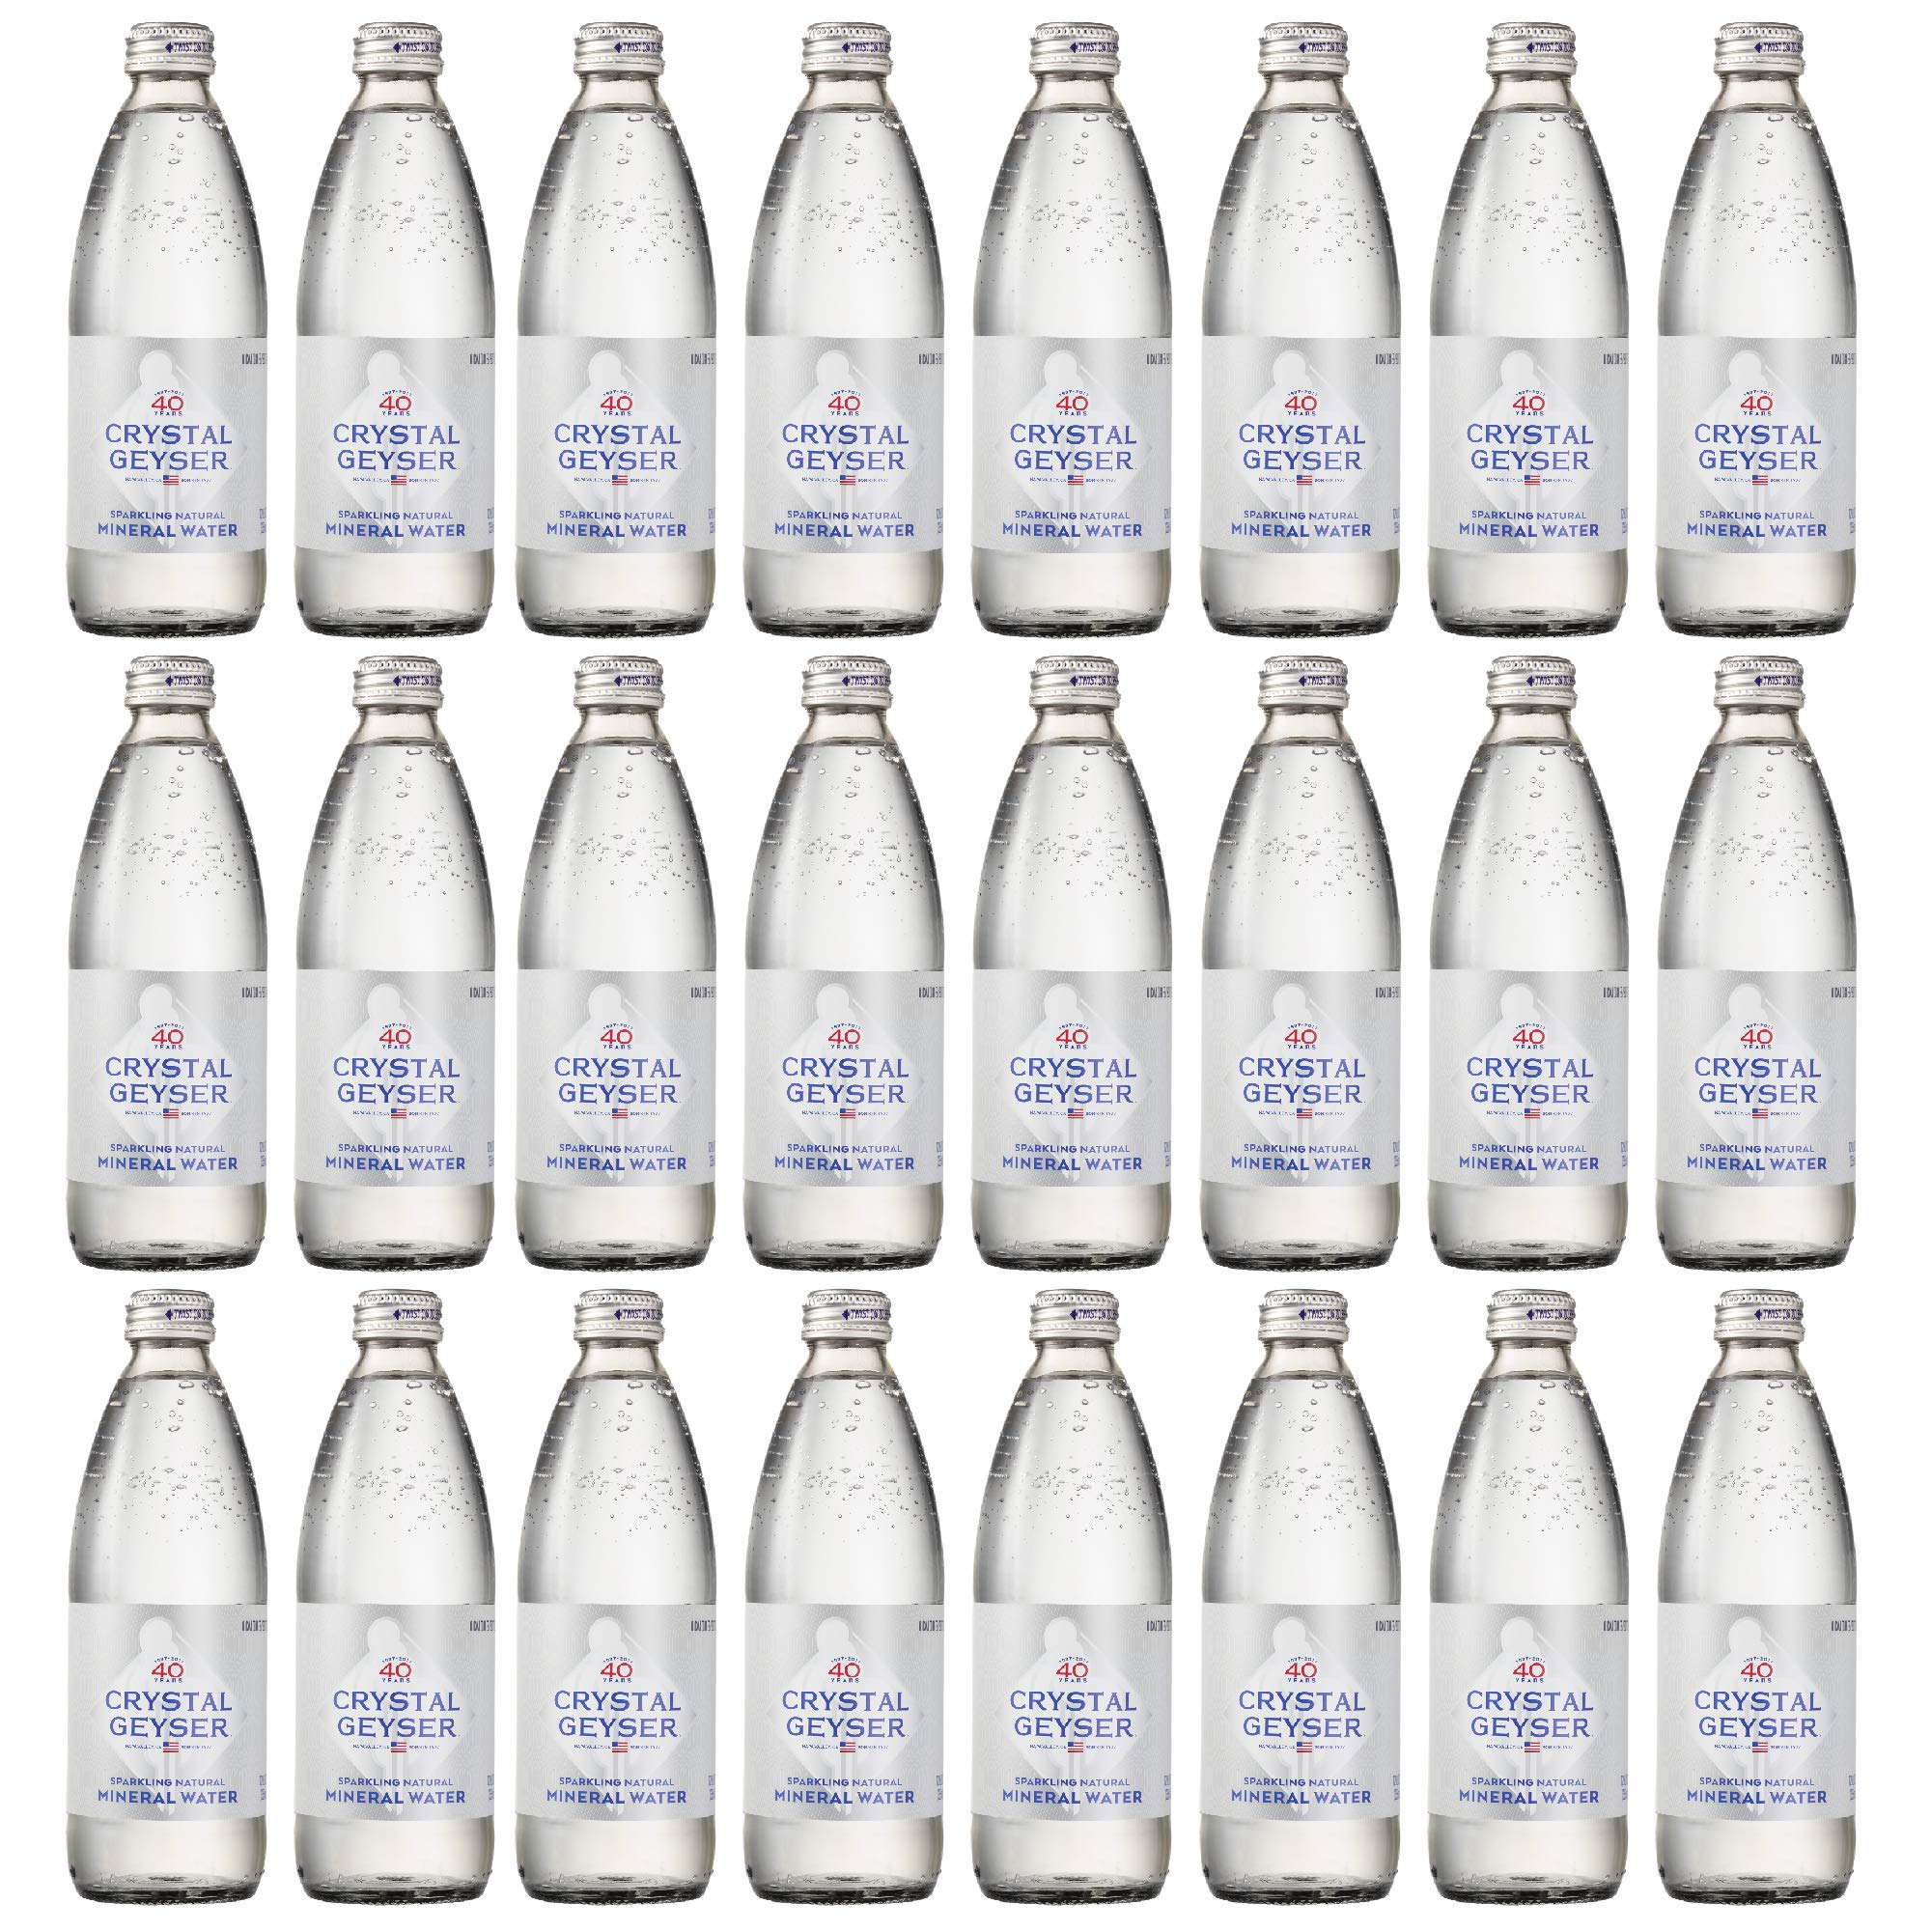 Crystal Geyser 12 oz Original Natural Sparkling Mineral Water, 24 Pack, Glass Bottles, Zero Calorie, No Artificial Ingredients or Sweeteners